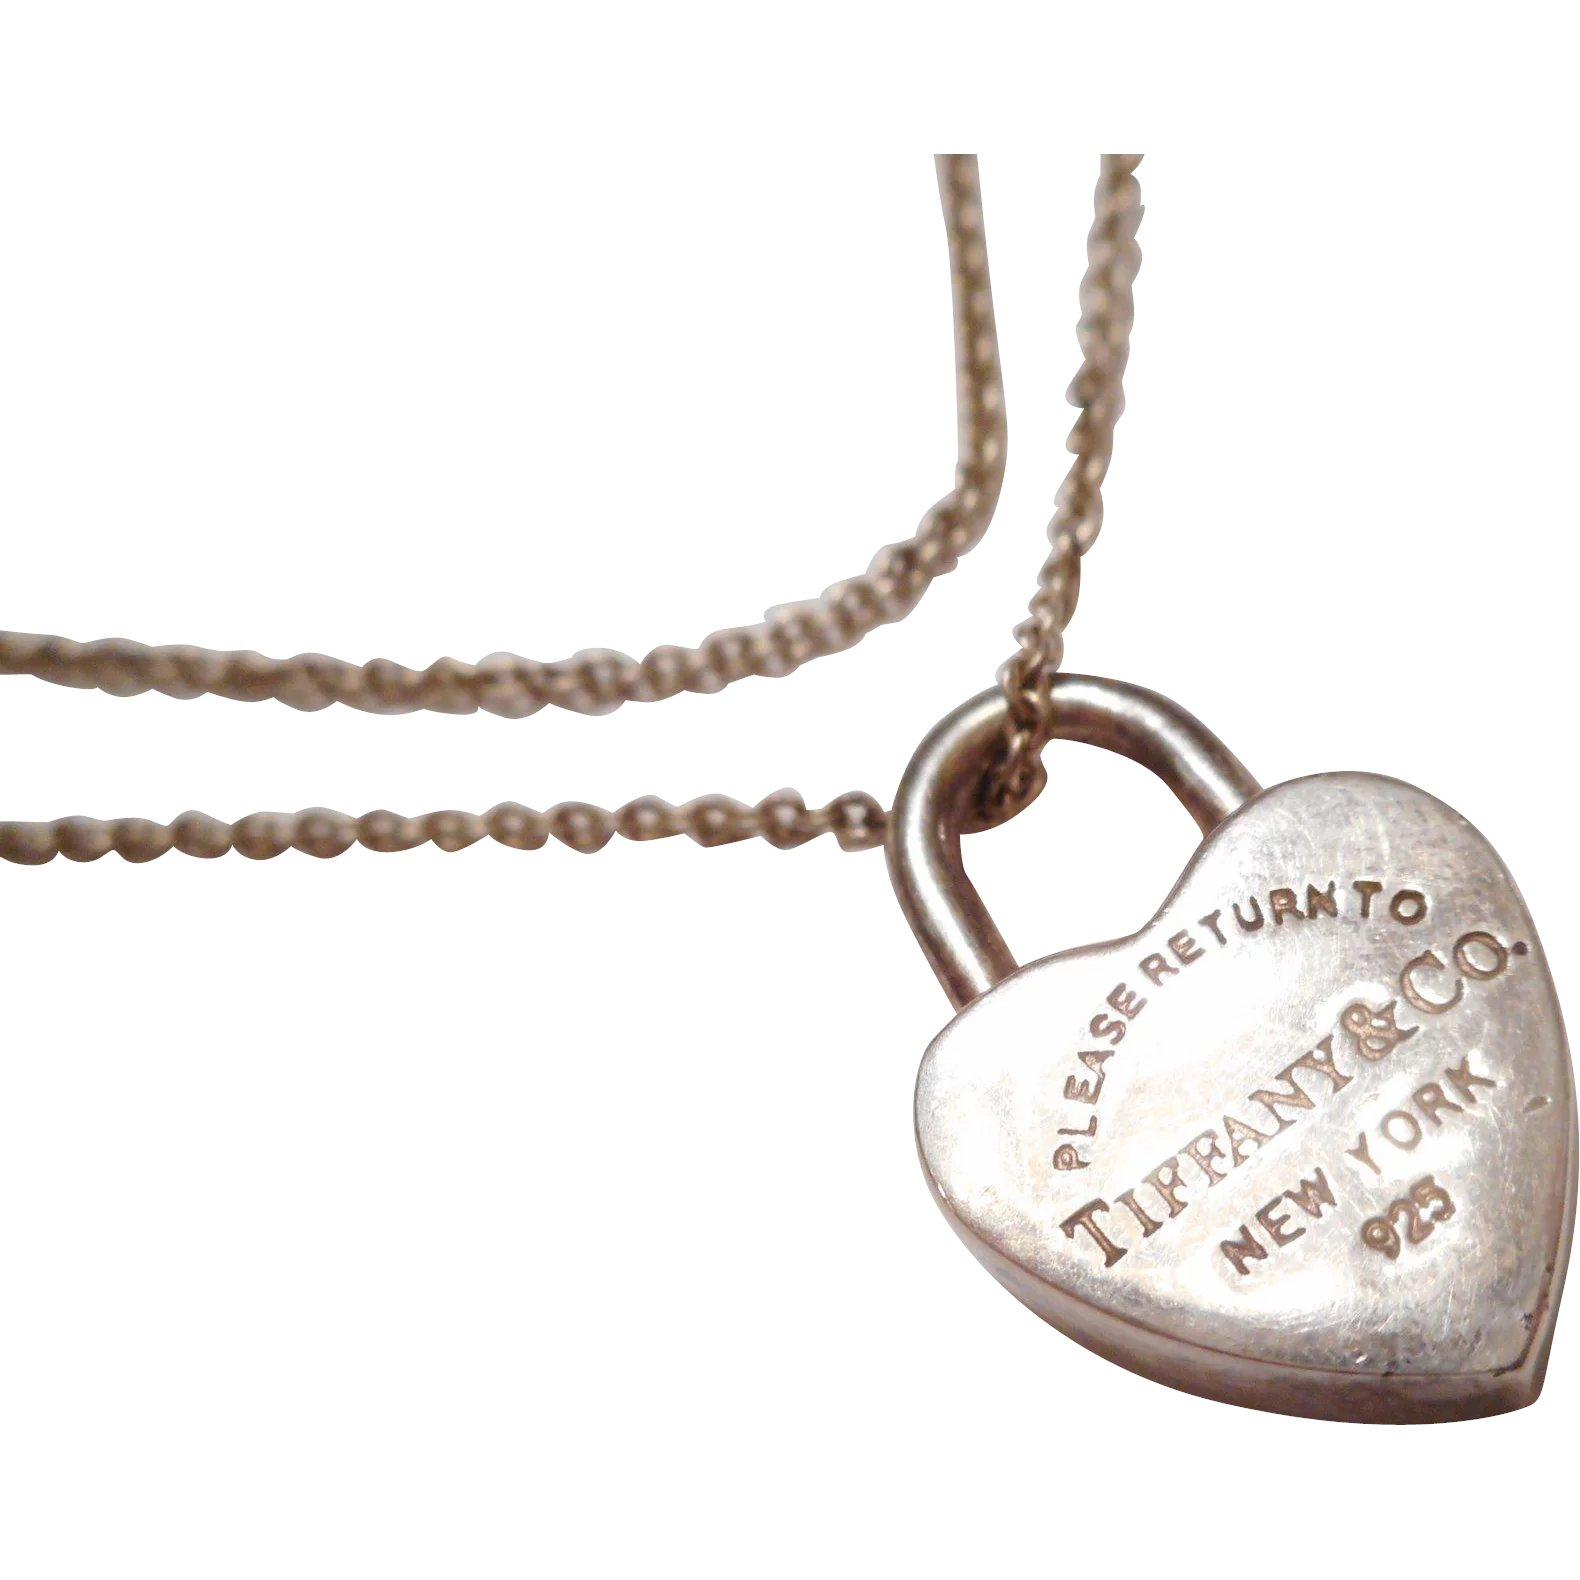 dce83a31b AUTHENTIC Vintage Tiffany & Co. Sterling Silver Heart Padlock Pendant :  Vanity's Antique Studio | Ruby Lane